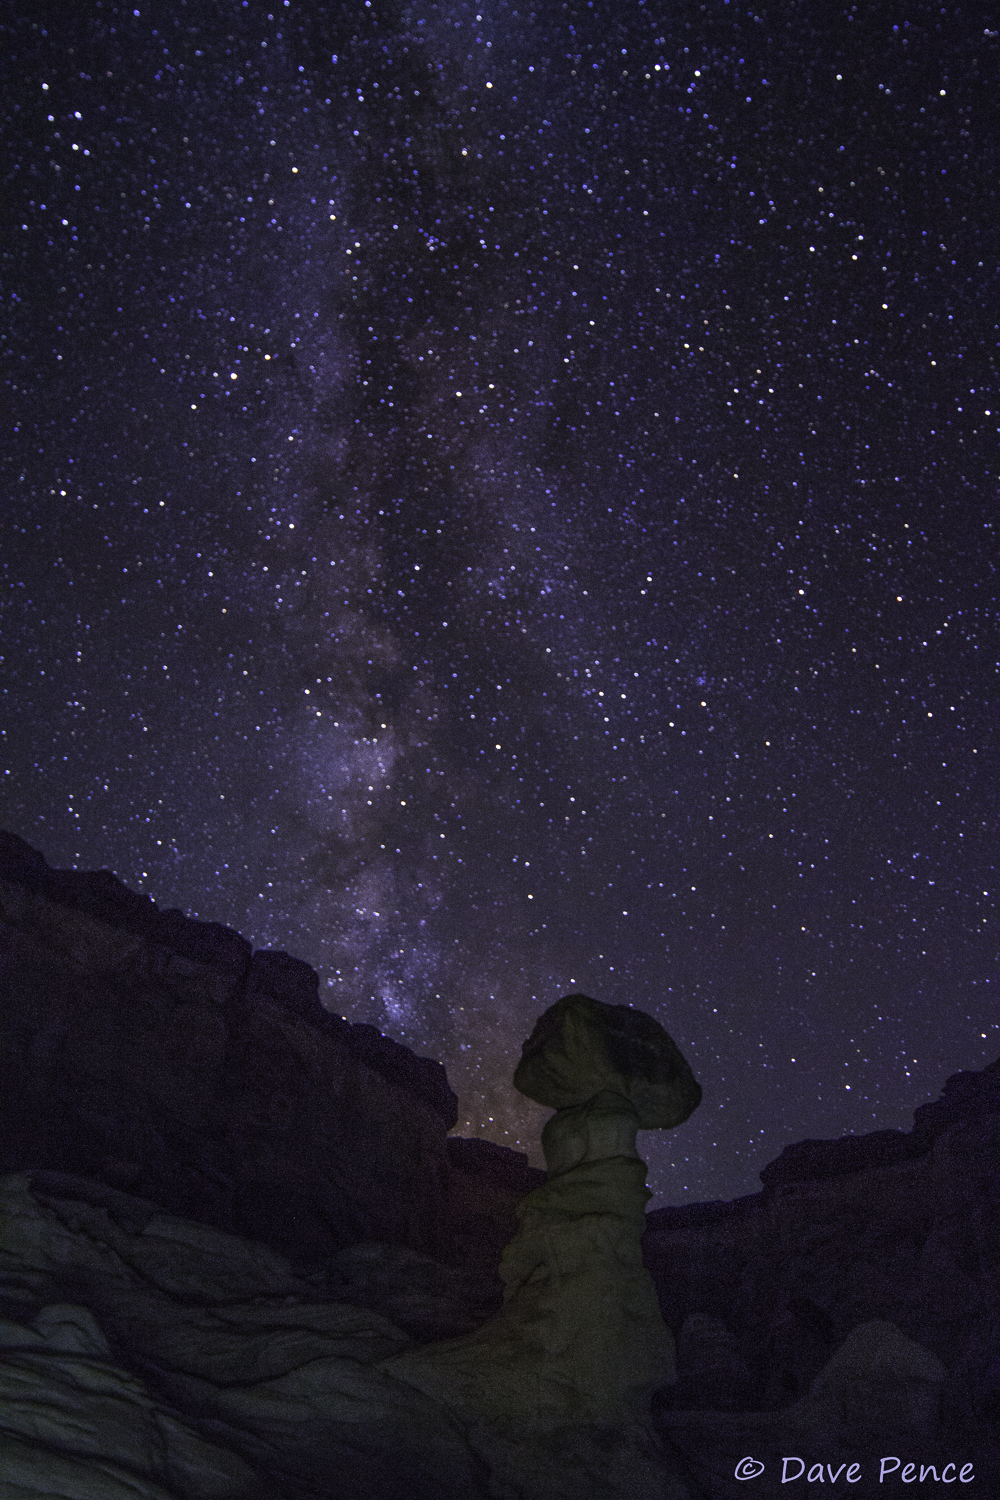 Dave and I both love photographing the Milky Way. I have not done it for a while so I appreciate his efforts . . . and results.